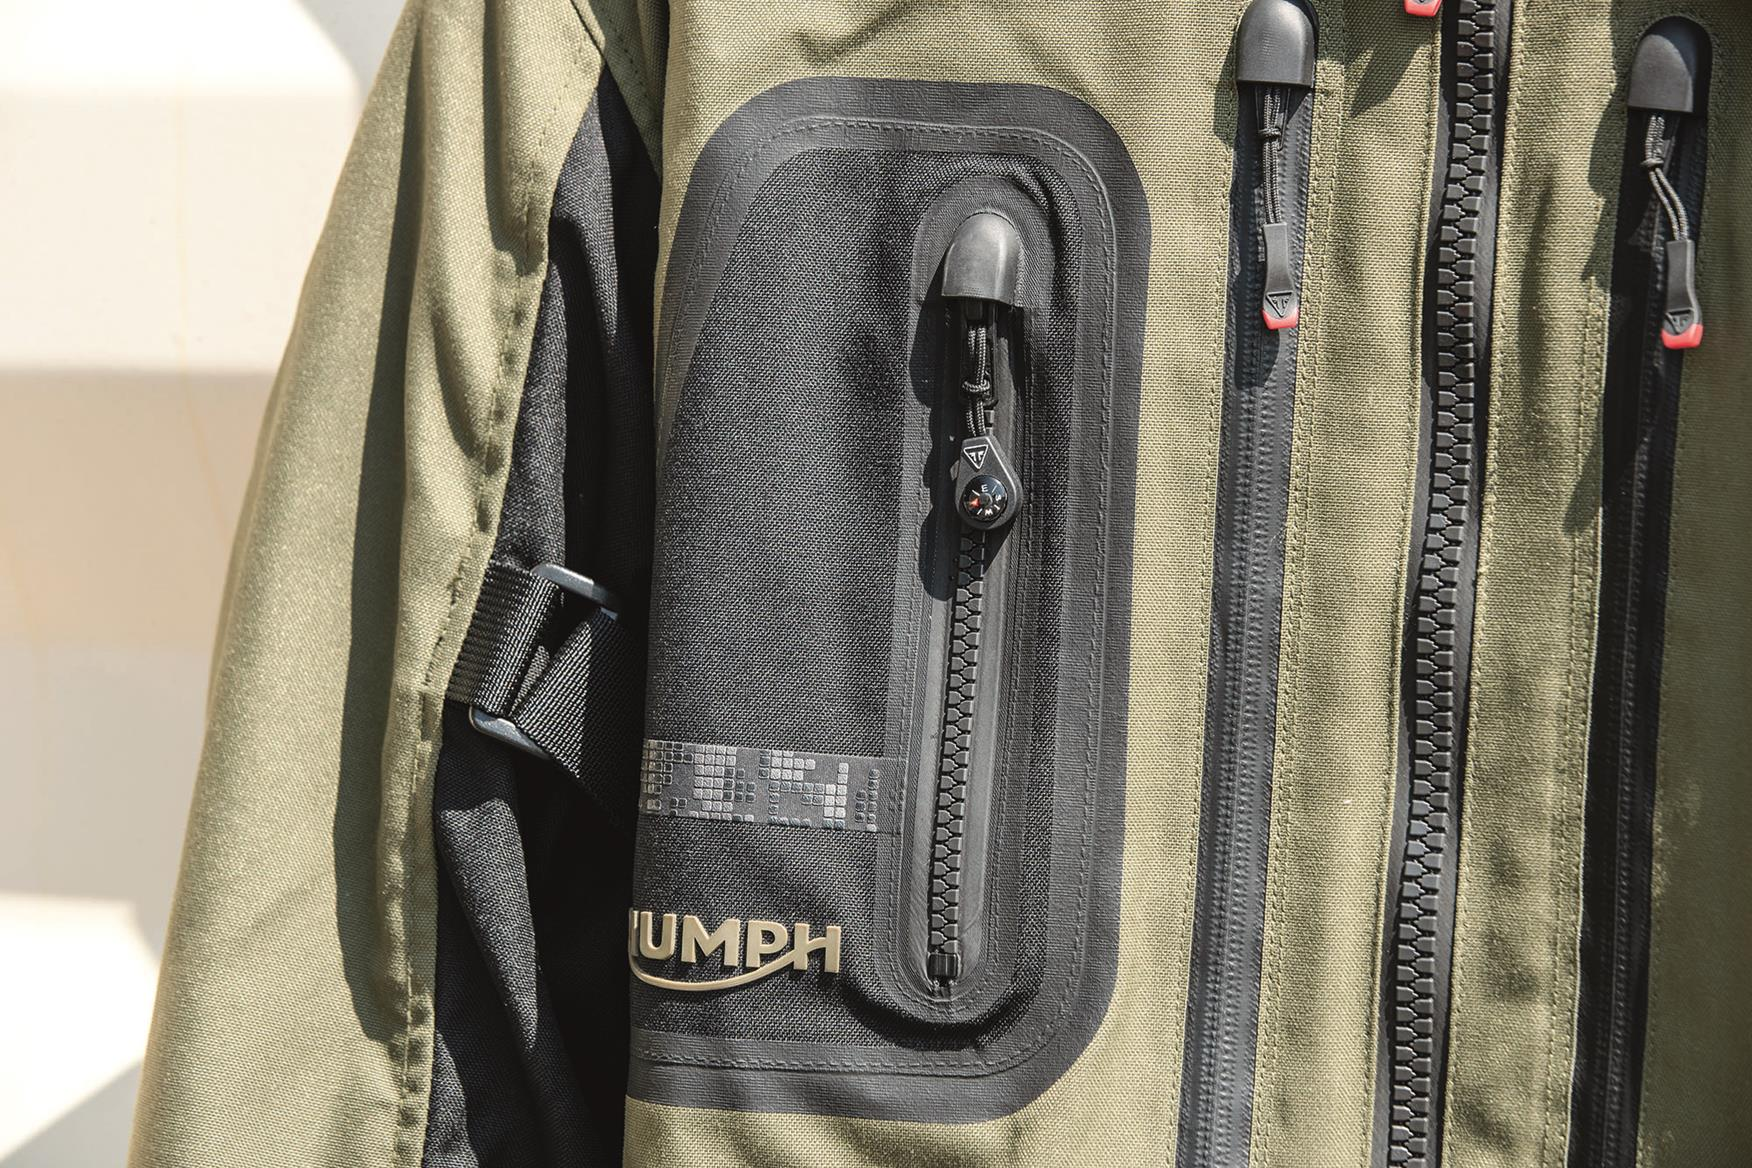 Triumph Brecon jacket pocket